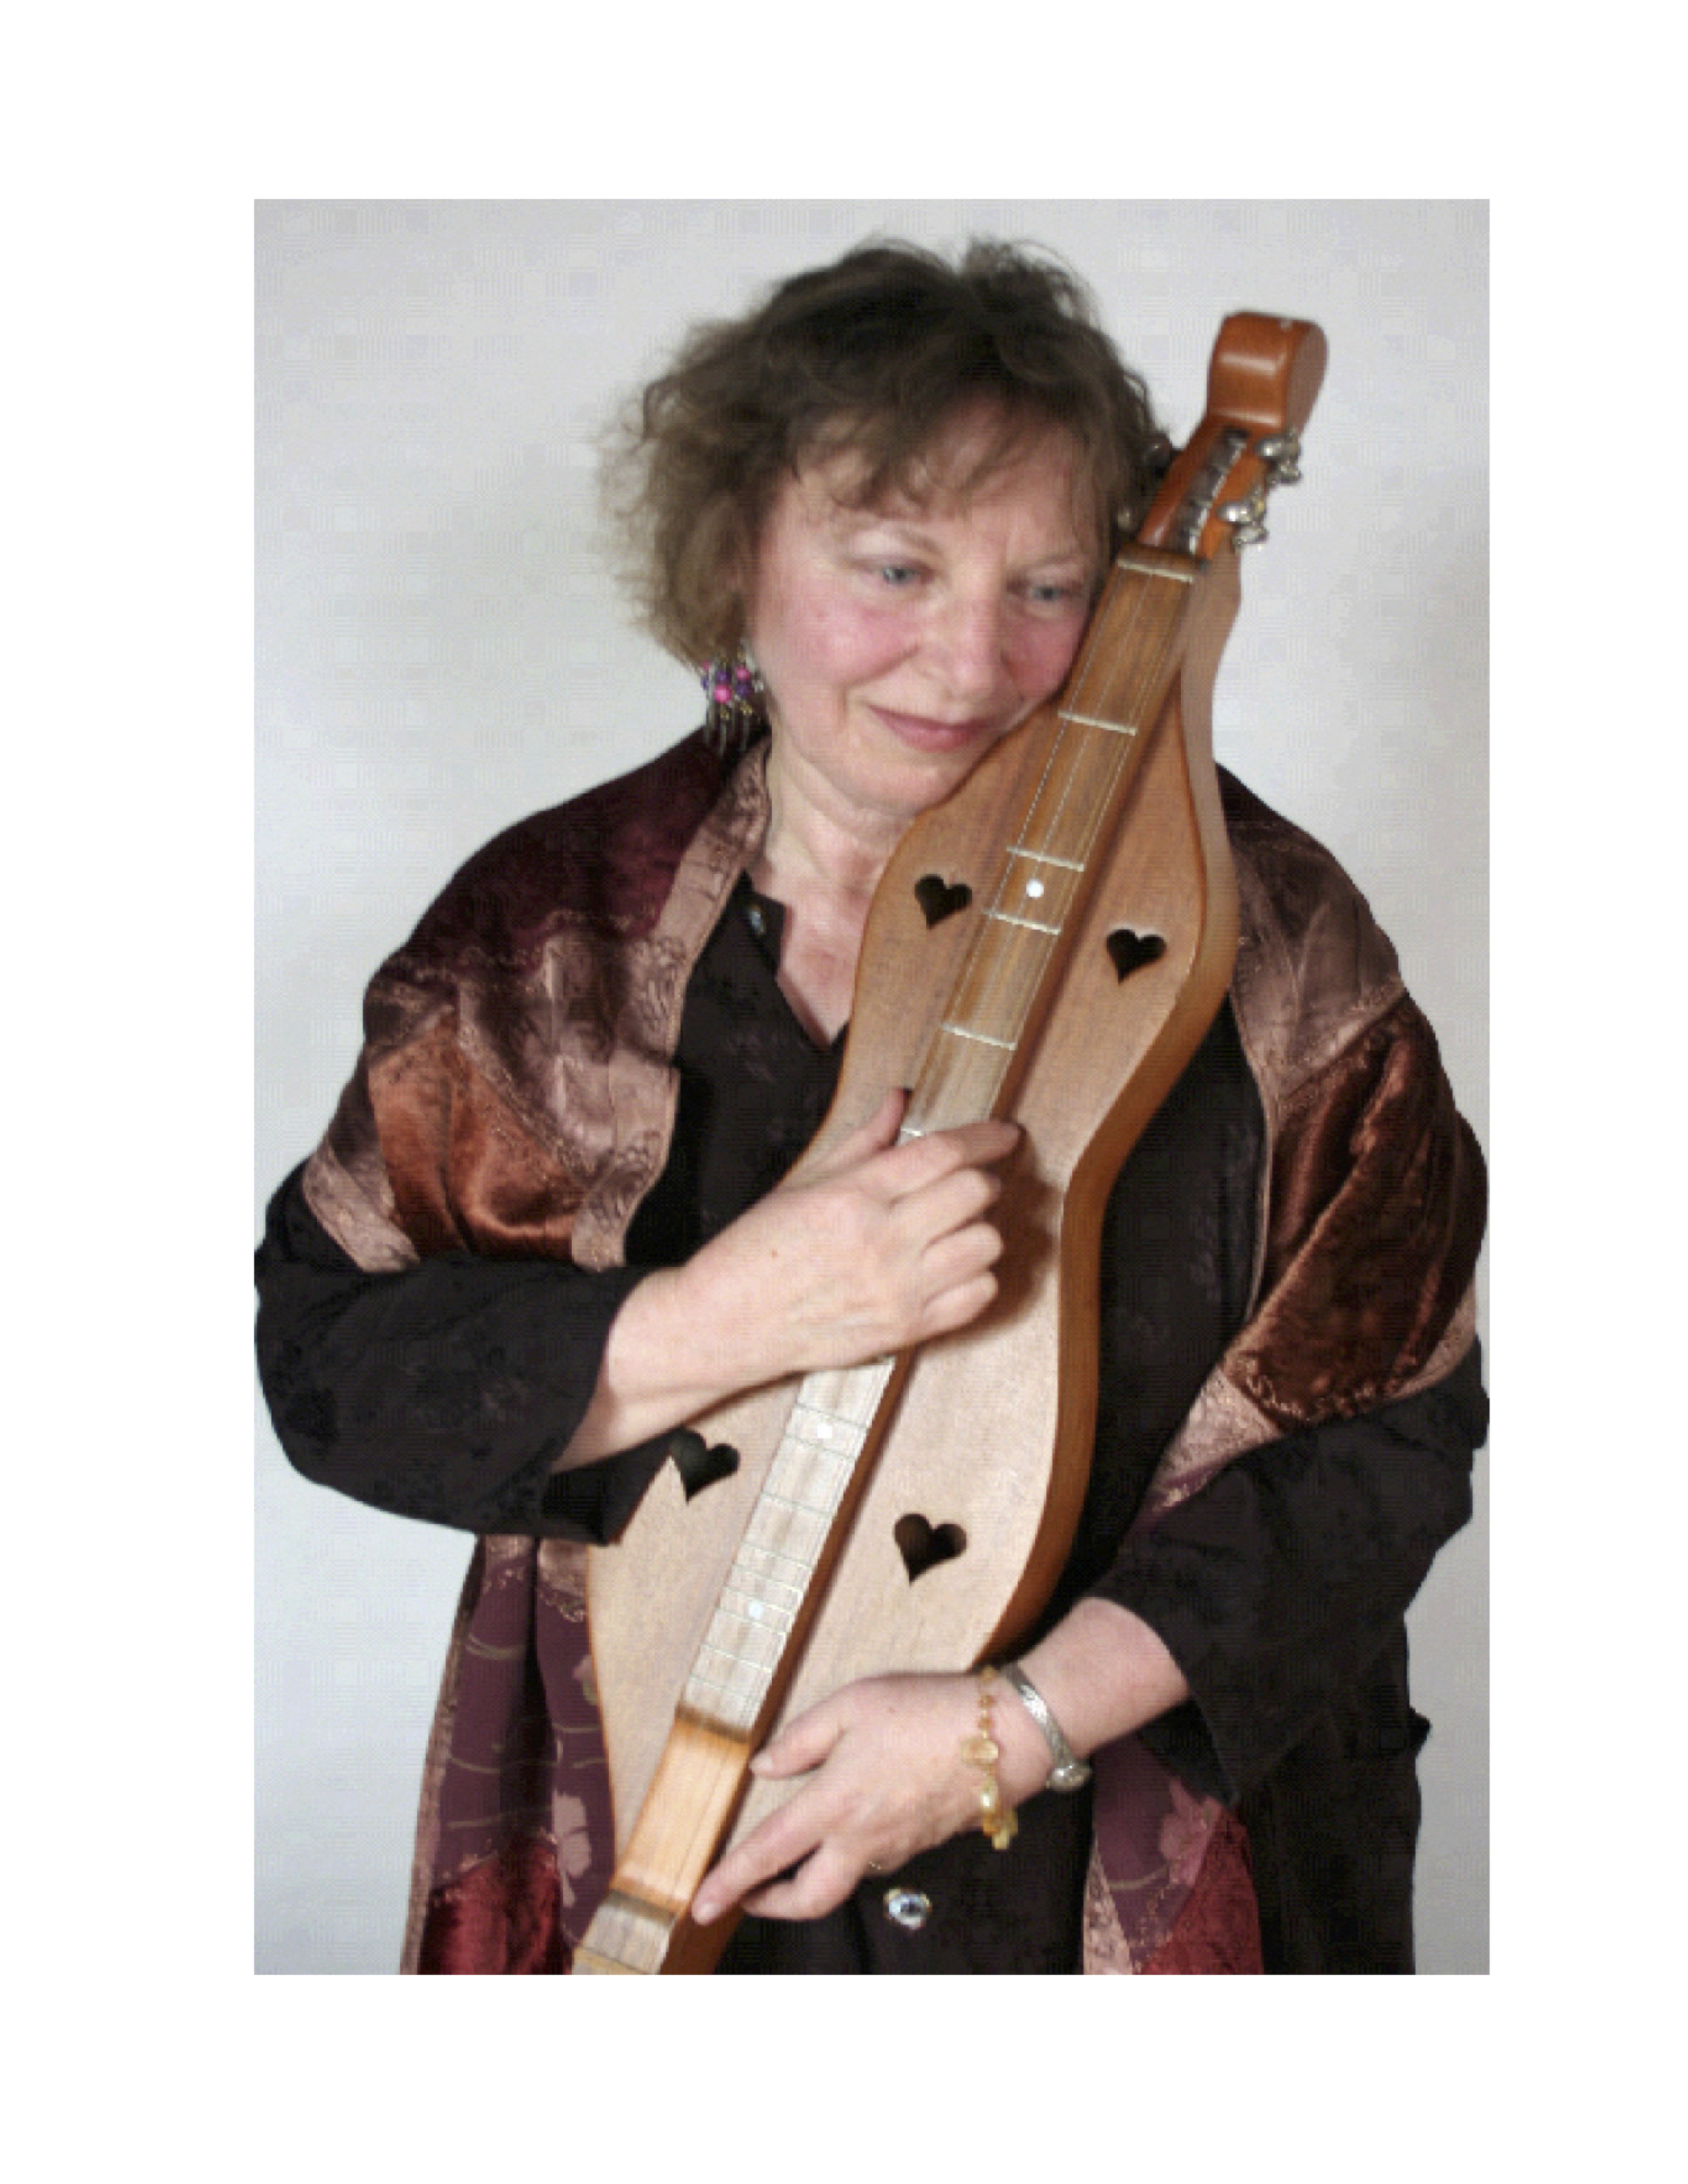 Naomi Rose with dulcimer. photo credit: Lucie LeBlanc